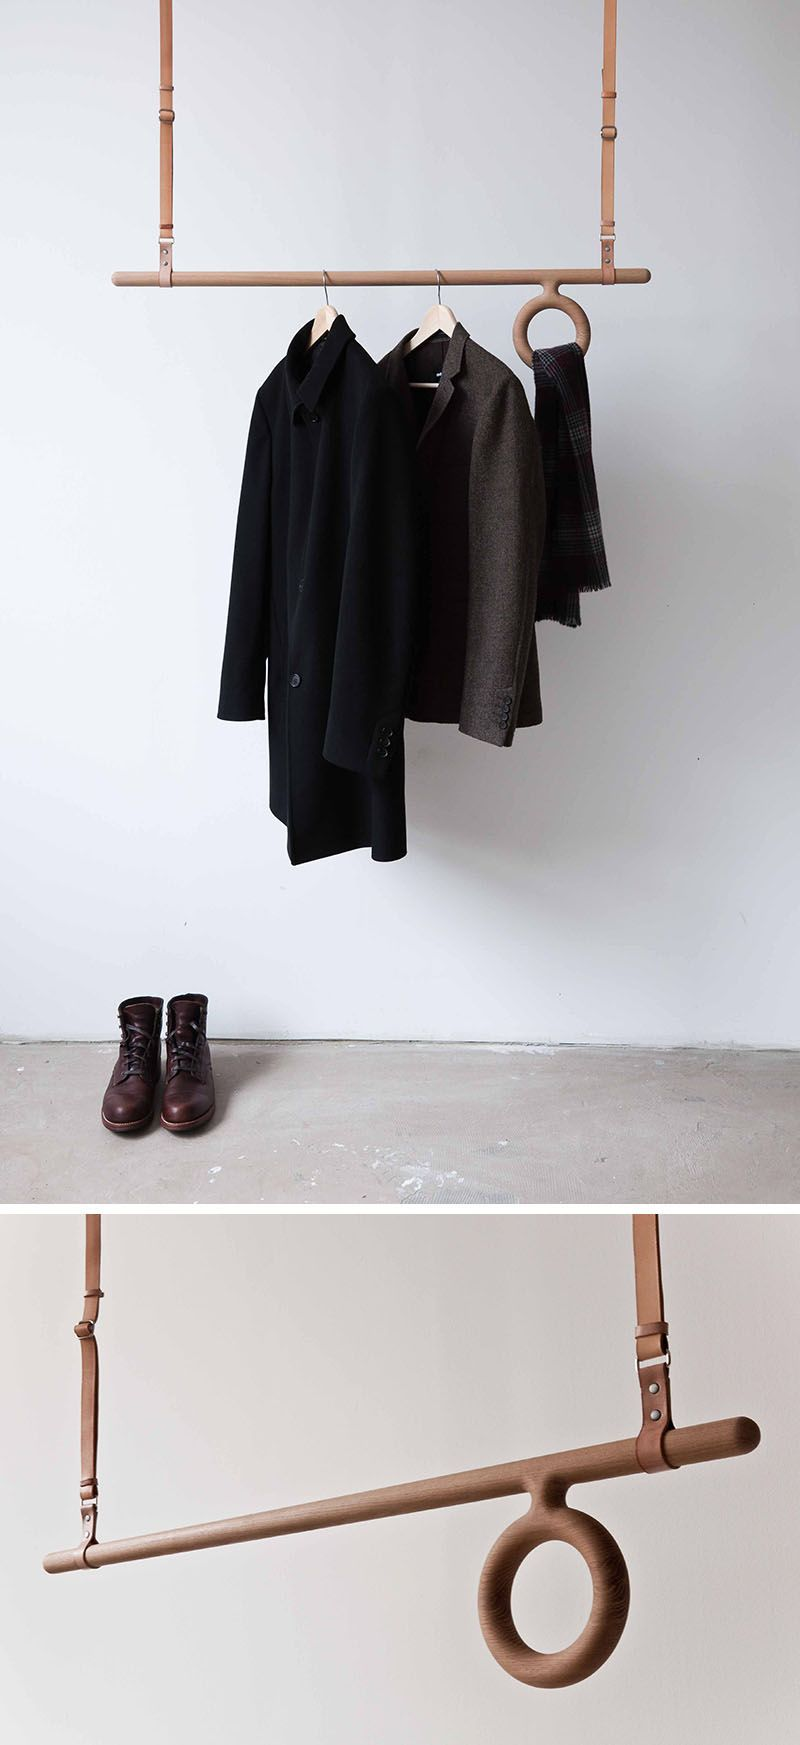 Merveilleux Interior Design Idea   Coat Racks That Hang From The Ceiling // This  Adjustable Wood And Leather Coat Rack Has A Wood Rod Acting As A Place To  Hang Coat ...